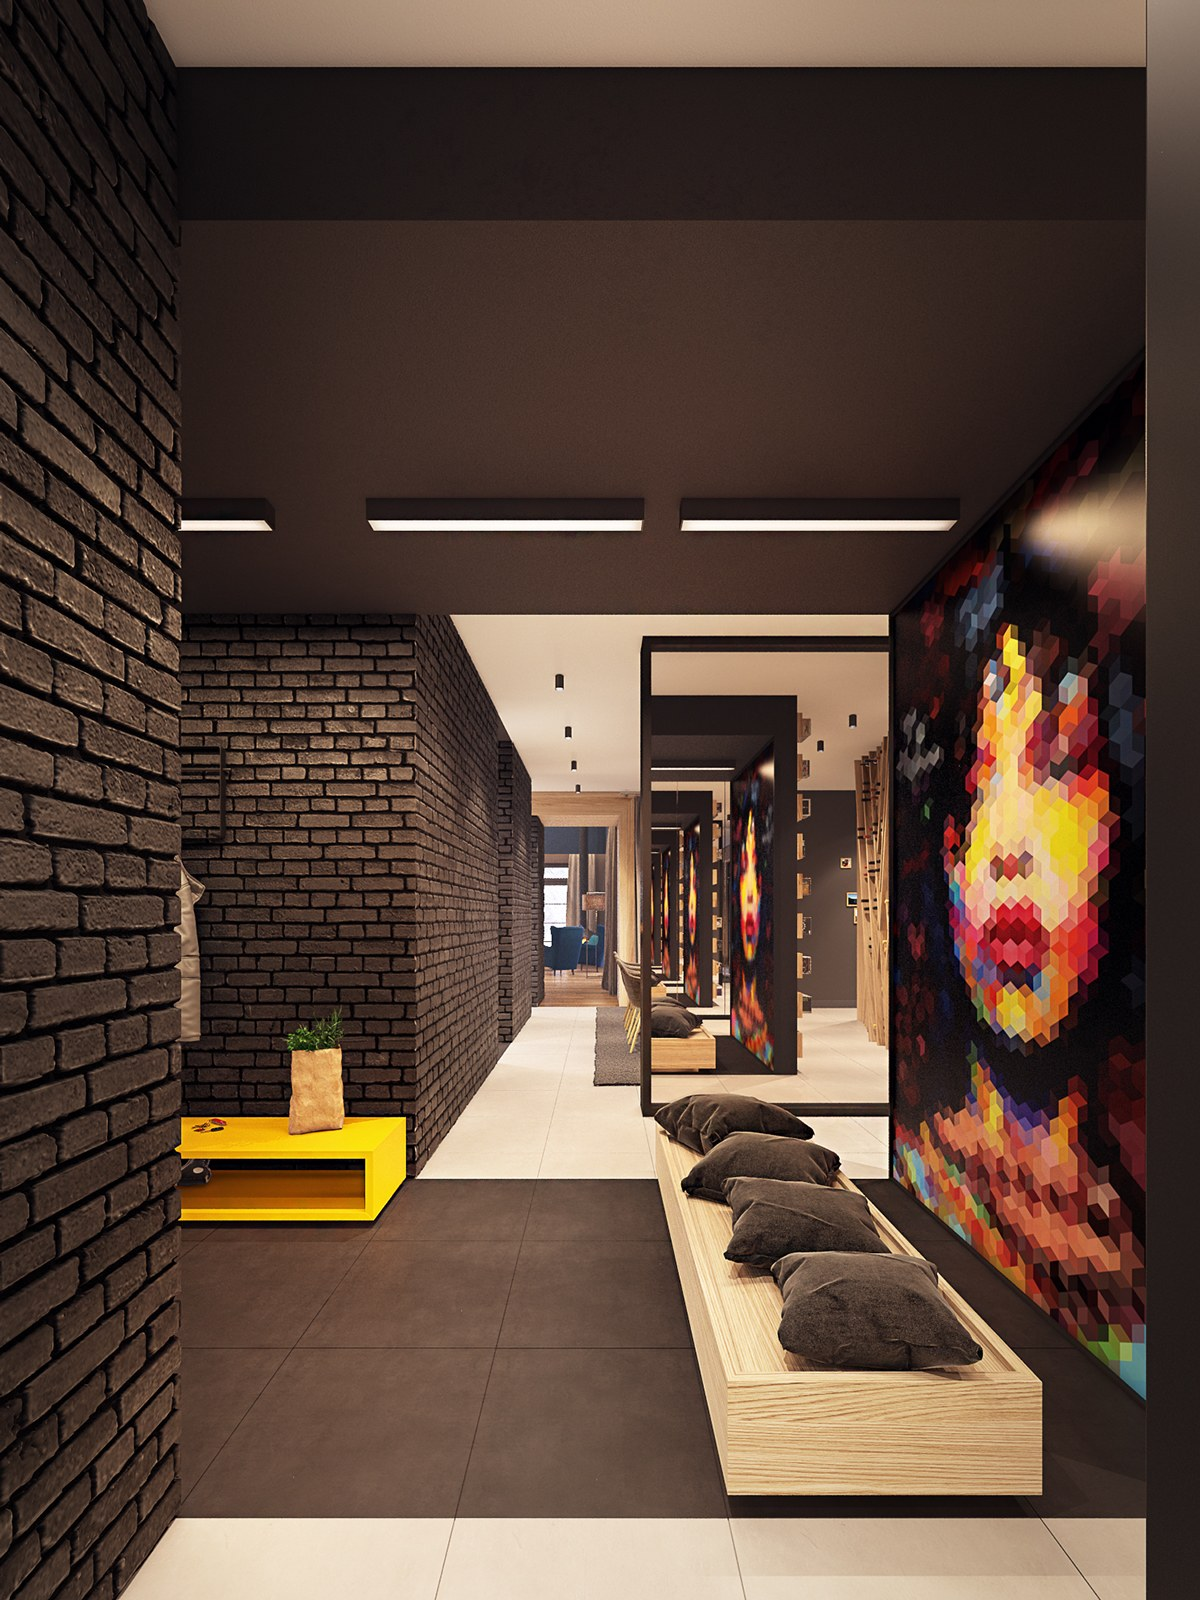 Sweet Modern Seating - A seductive home with lush colors and double baths